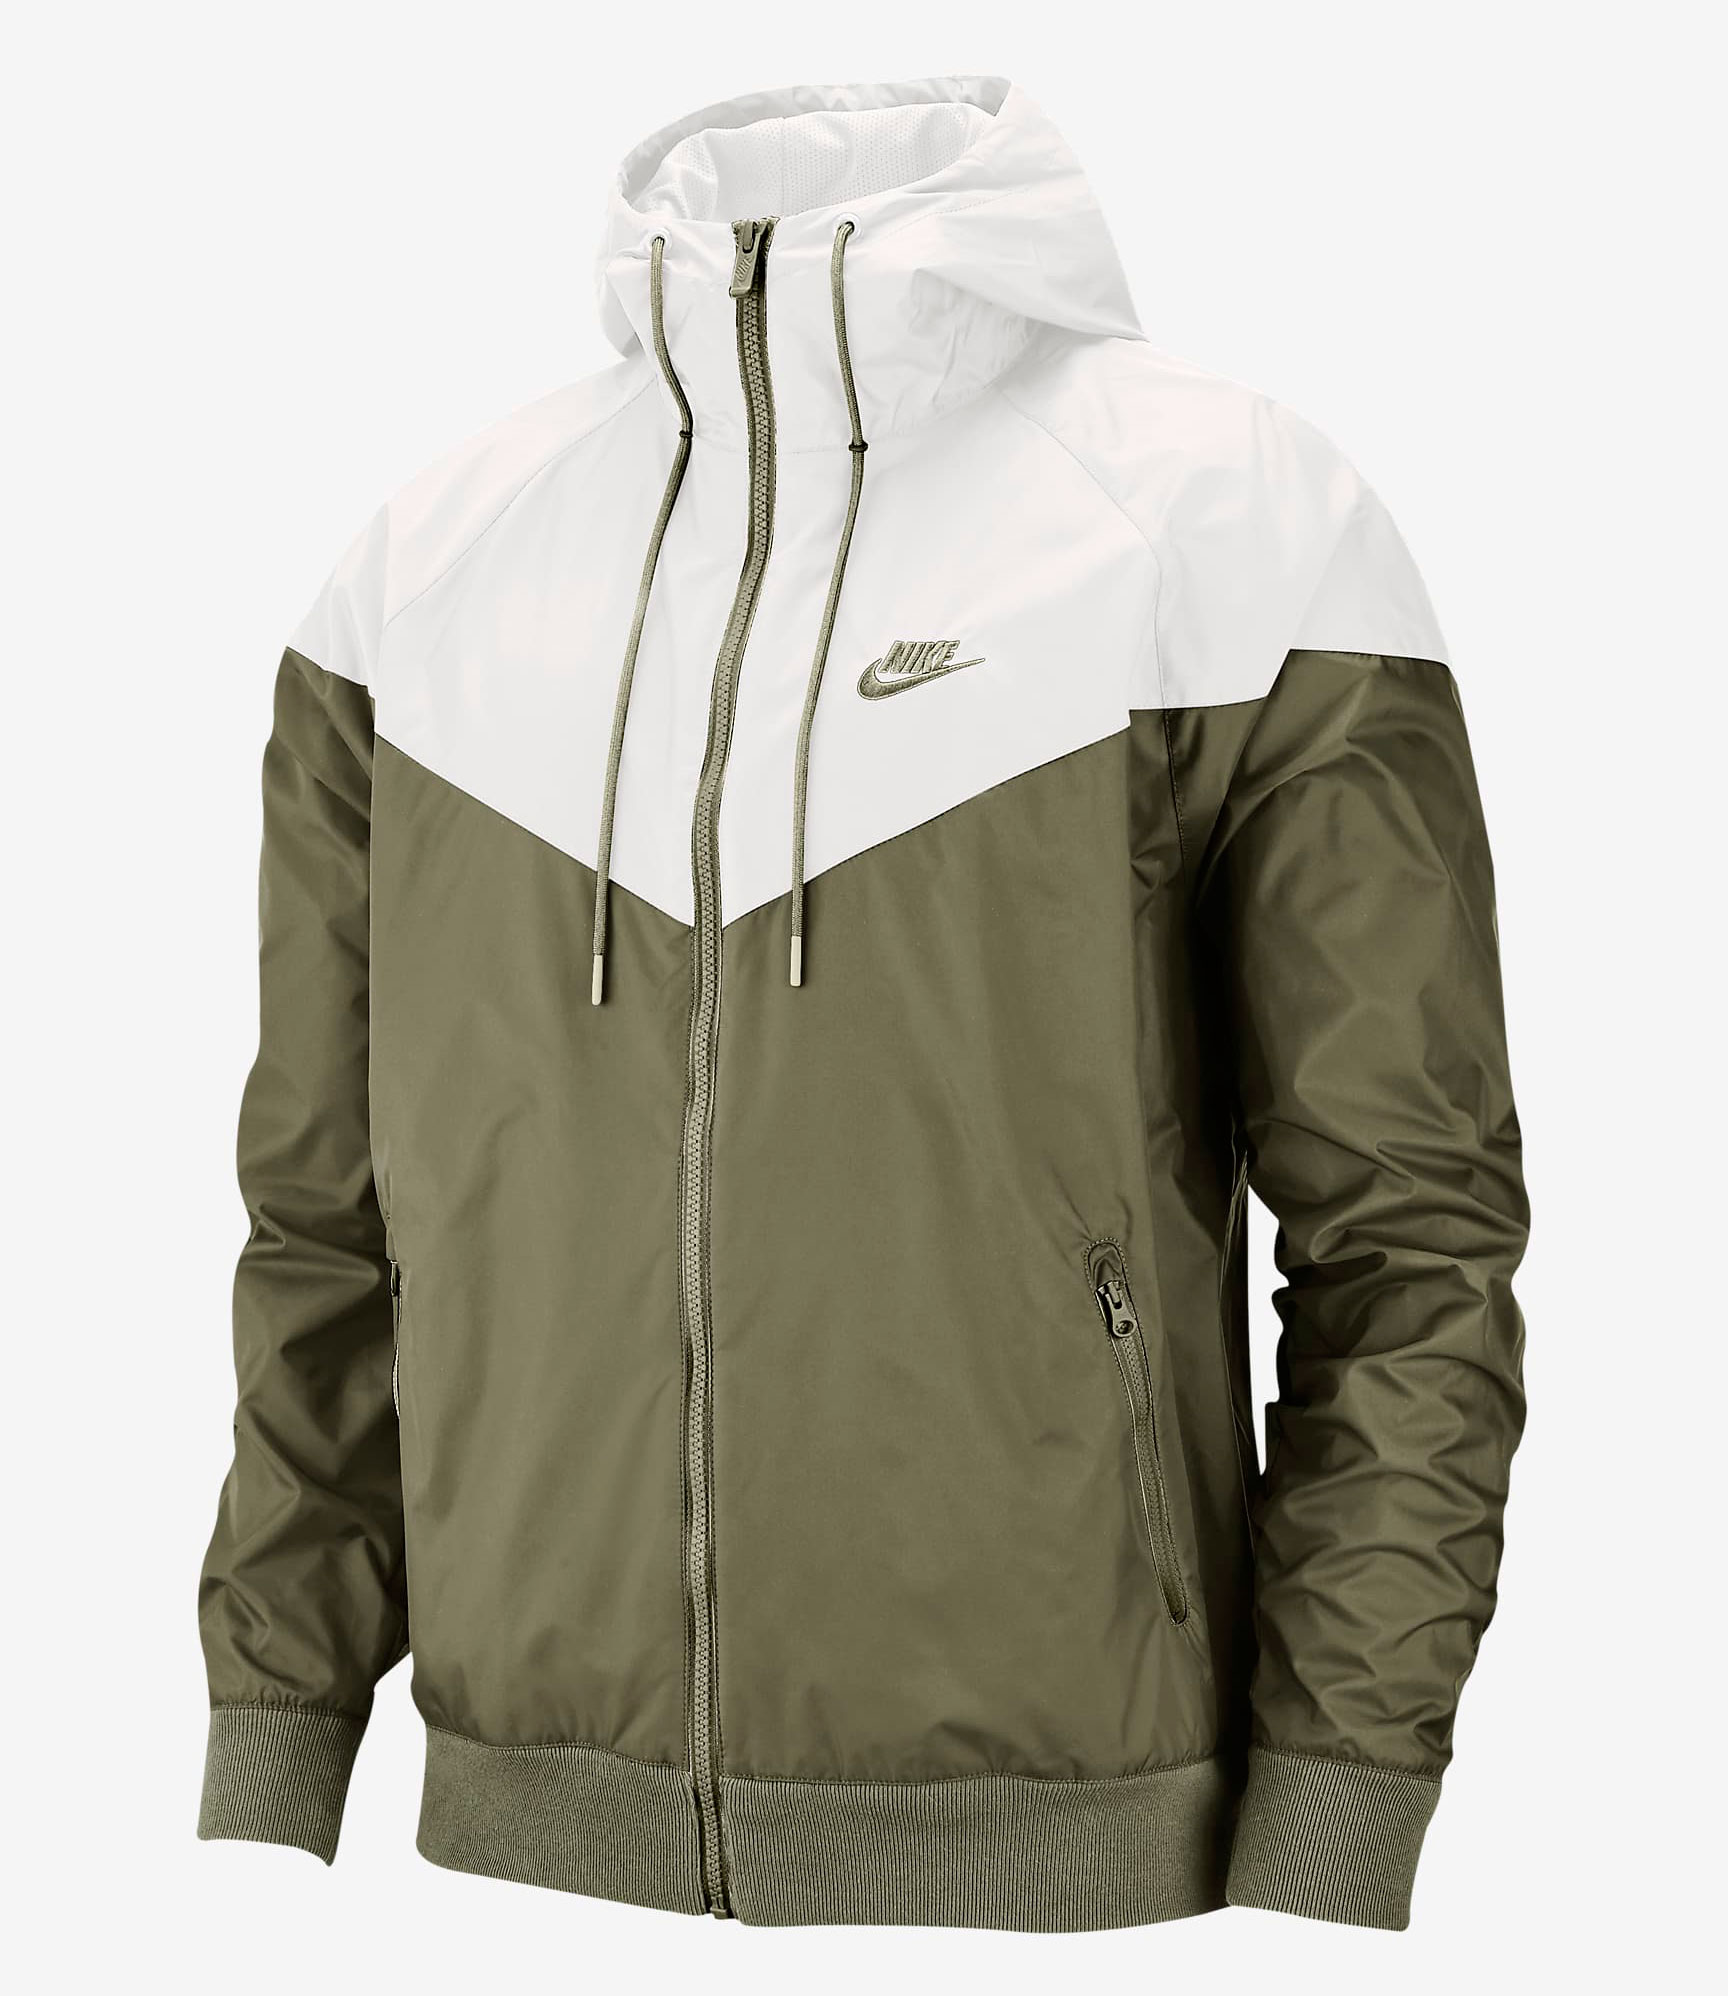 nike-windrunner-jacket-twilight-marsh-olive-green